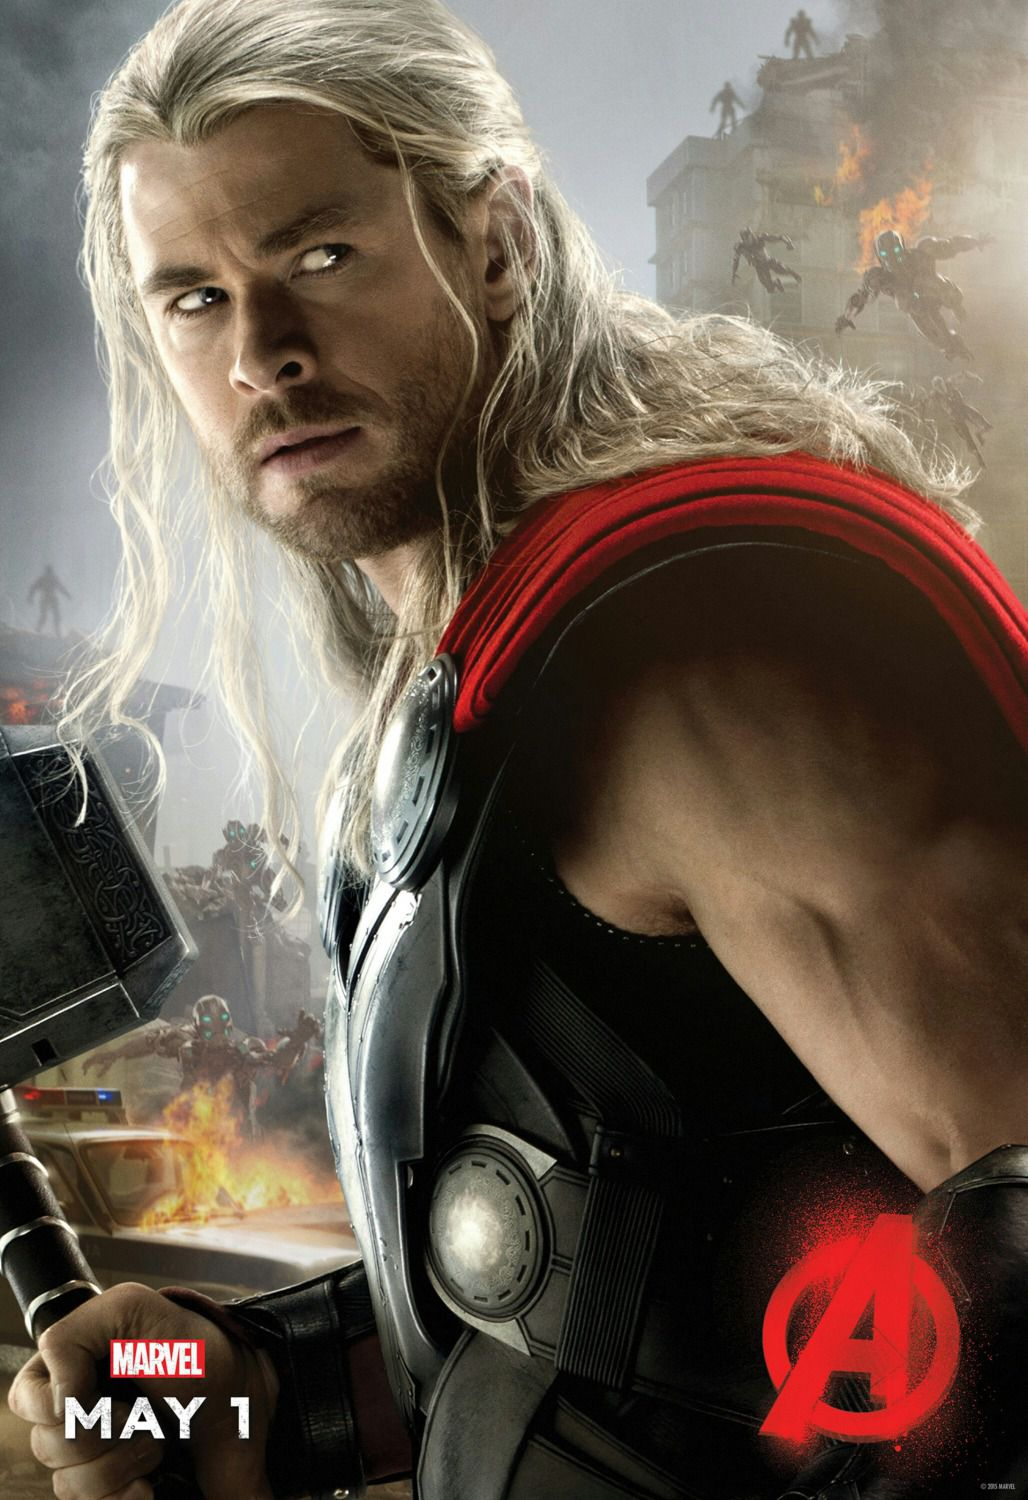 Avengers 2 - Age of Ultron . poster - Thor